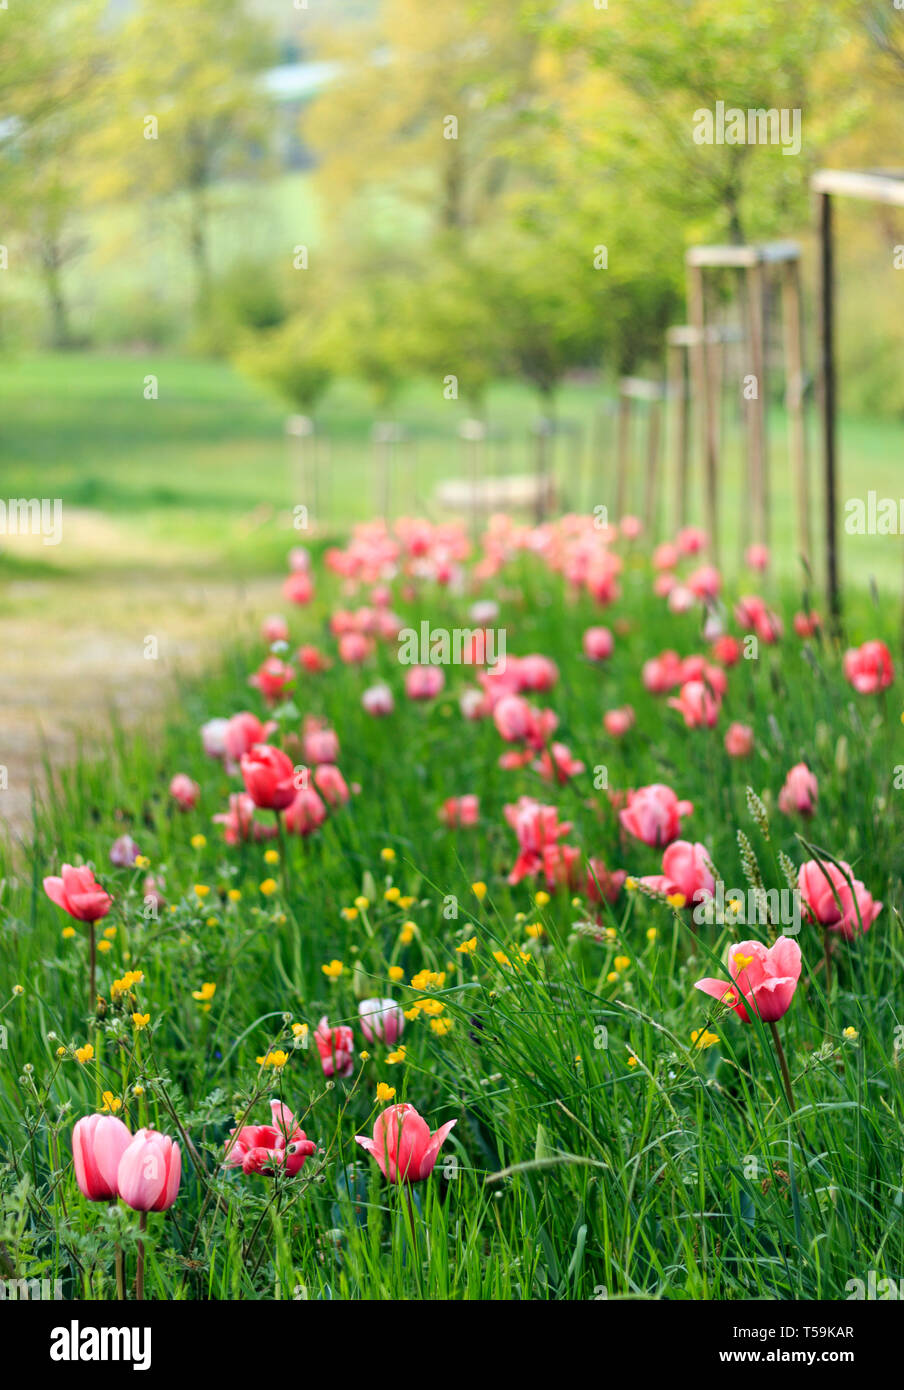 Beautiful pink tulip flowers in a park way of the Castle of Pralormo nearby Turin in Piedmont, Italy, where every in April the famous Messer Tulipano  - Stock Image